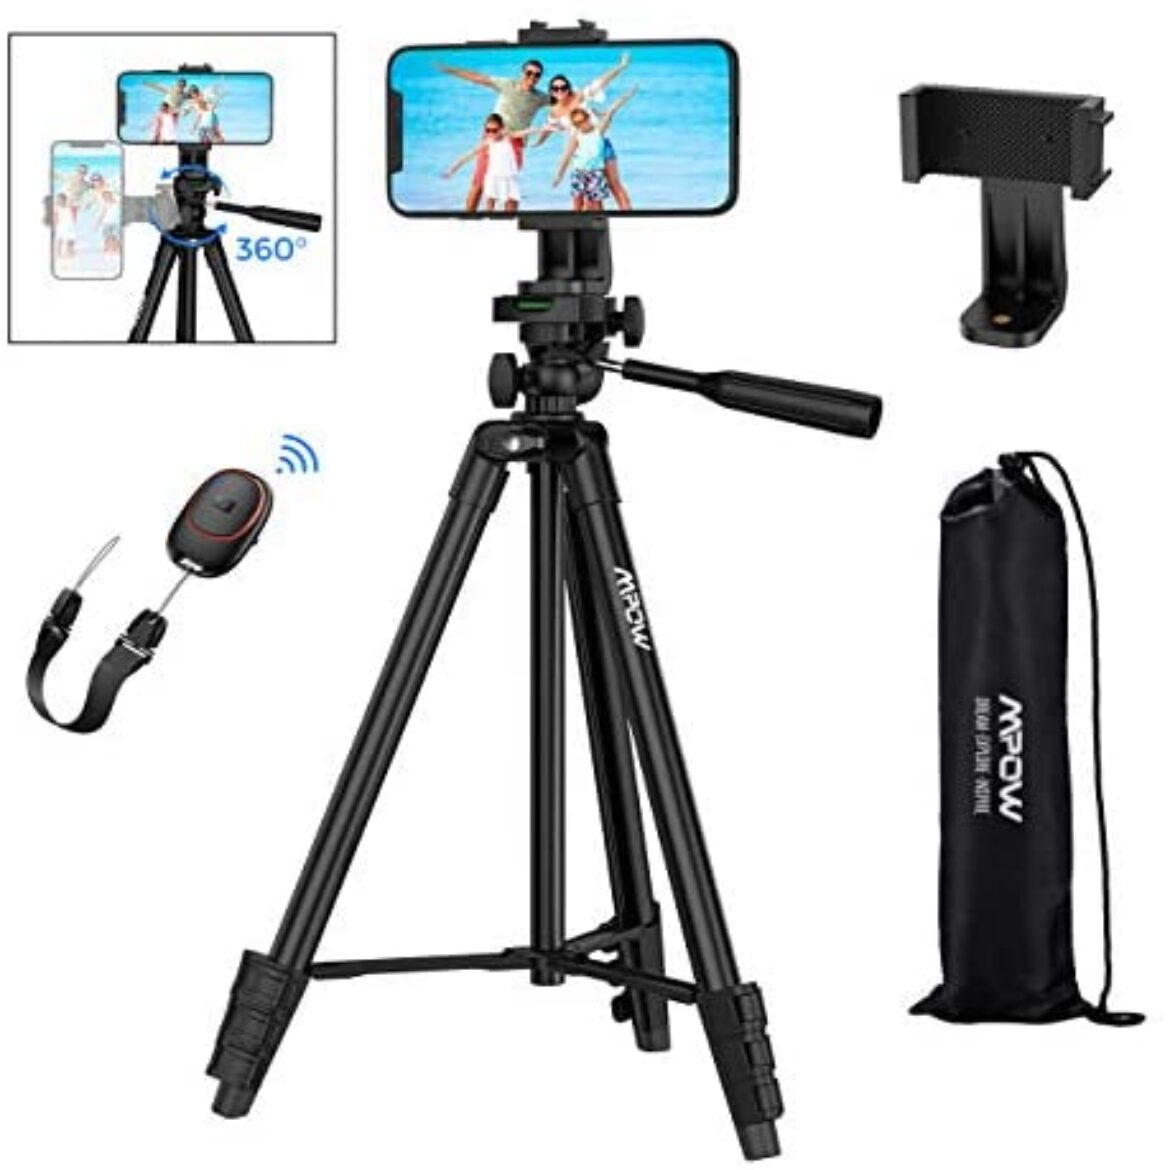 """Mpow Cell phone Tripod, Fifty three"""" Extendable Digicam Tripod with Bluetooth 5.0 Remote & 360° Rotatable Cell phone Holder & Elevate Procure, Light-weight Budge back and forth Cell phone Tripod Esteem minded with GoPro/iPhone 11/X/8/Galaxy A51"""